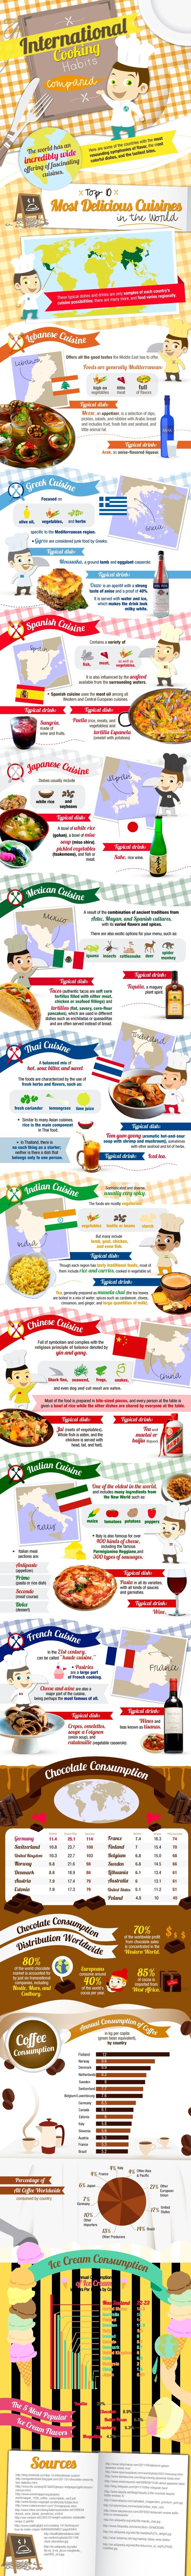 International Cooking Habits: Infographic International, Cooking Habits, Food Infographic, Food Network/Trisha, Food Drink, International Food, Infographics Food, Cooking Infographic, International Cooking